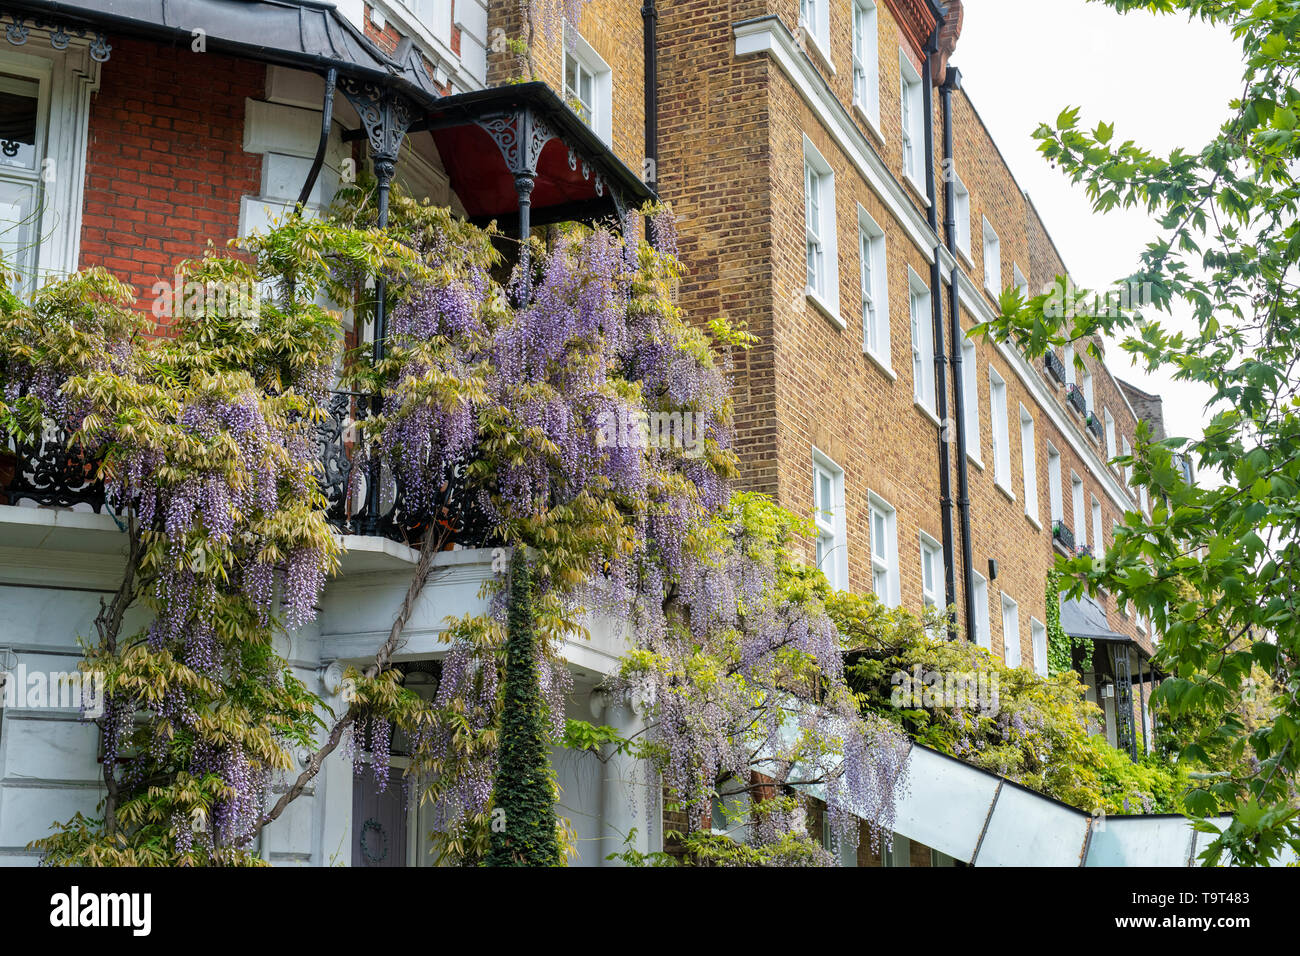 Wisteria on a house in Cheyne Walk, Chelsea, London, England - Stock Image